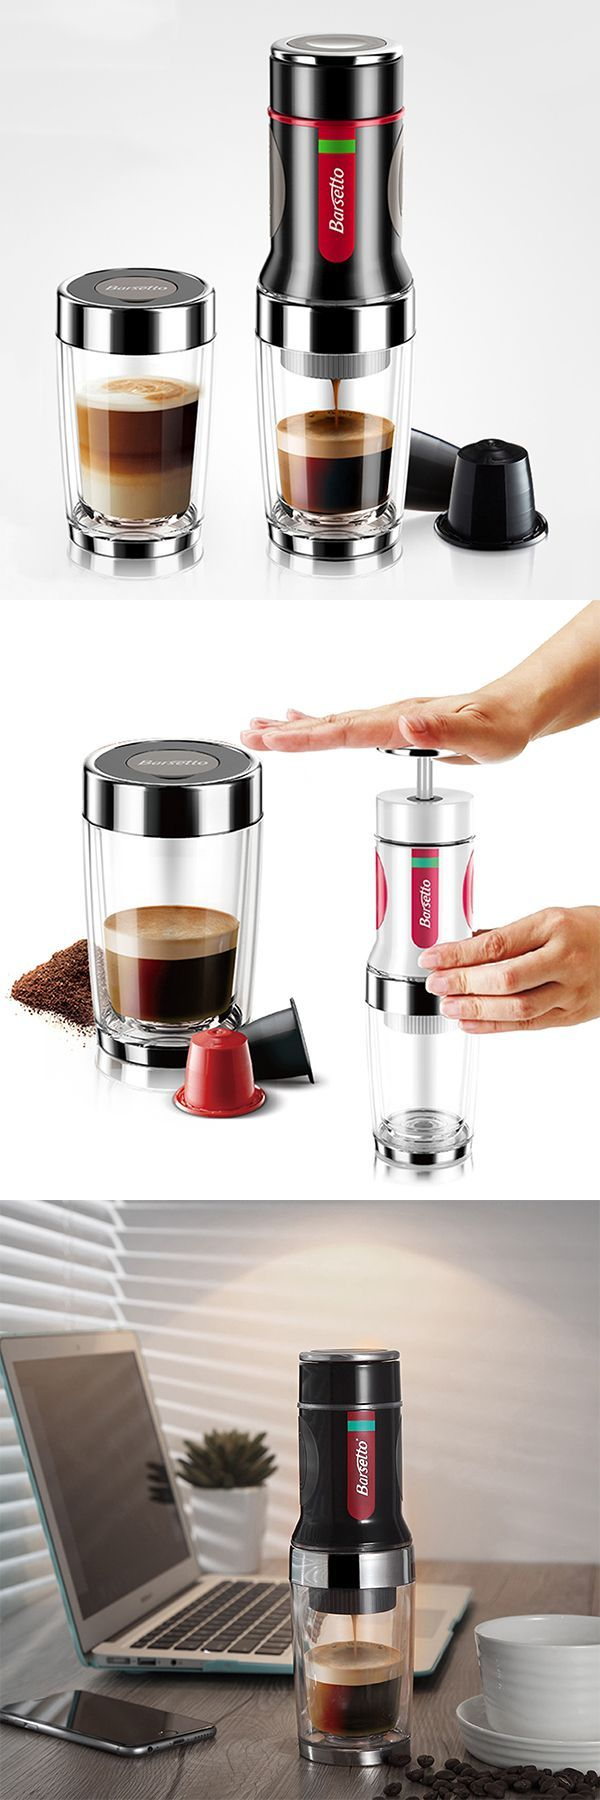 Portable Manual Coffee Maker Cup Which Has